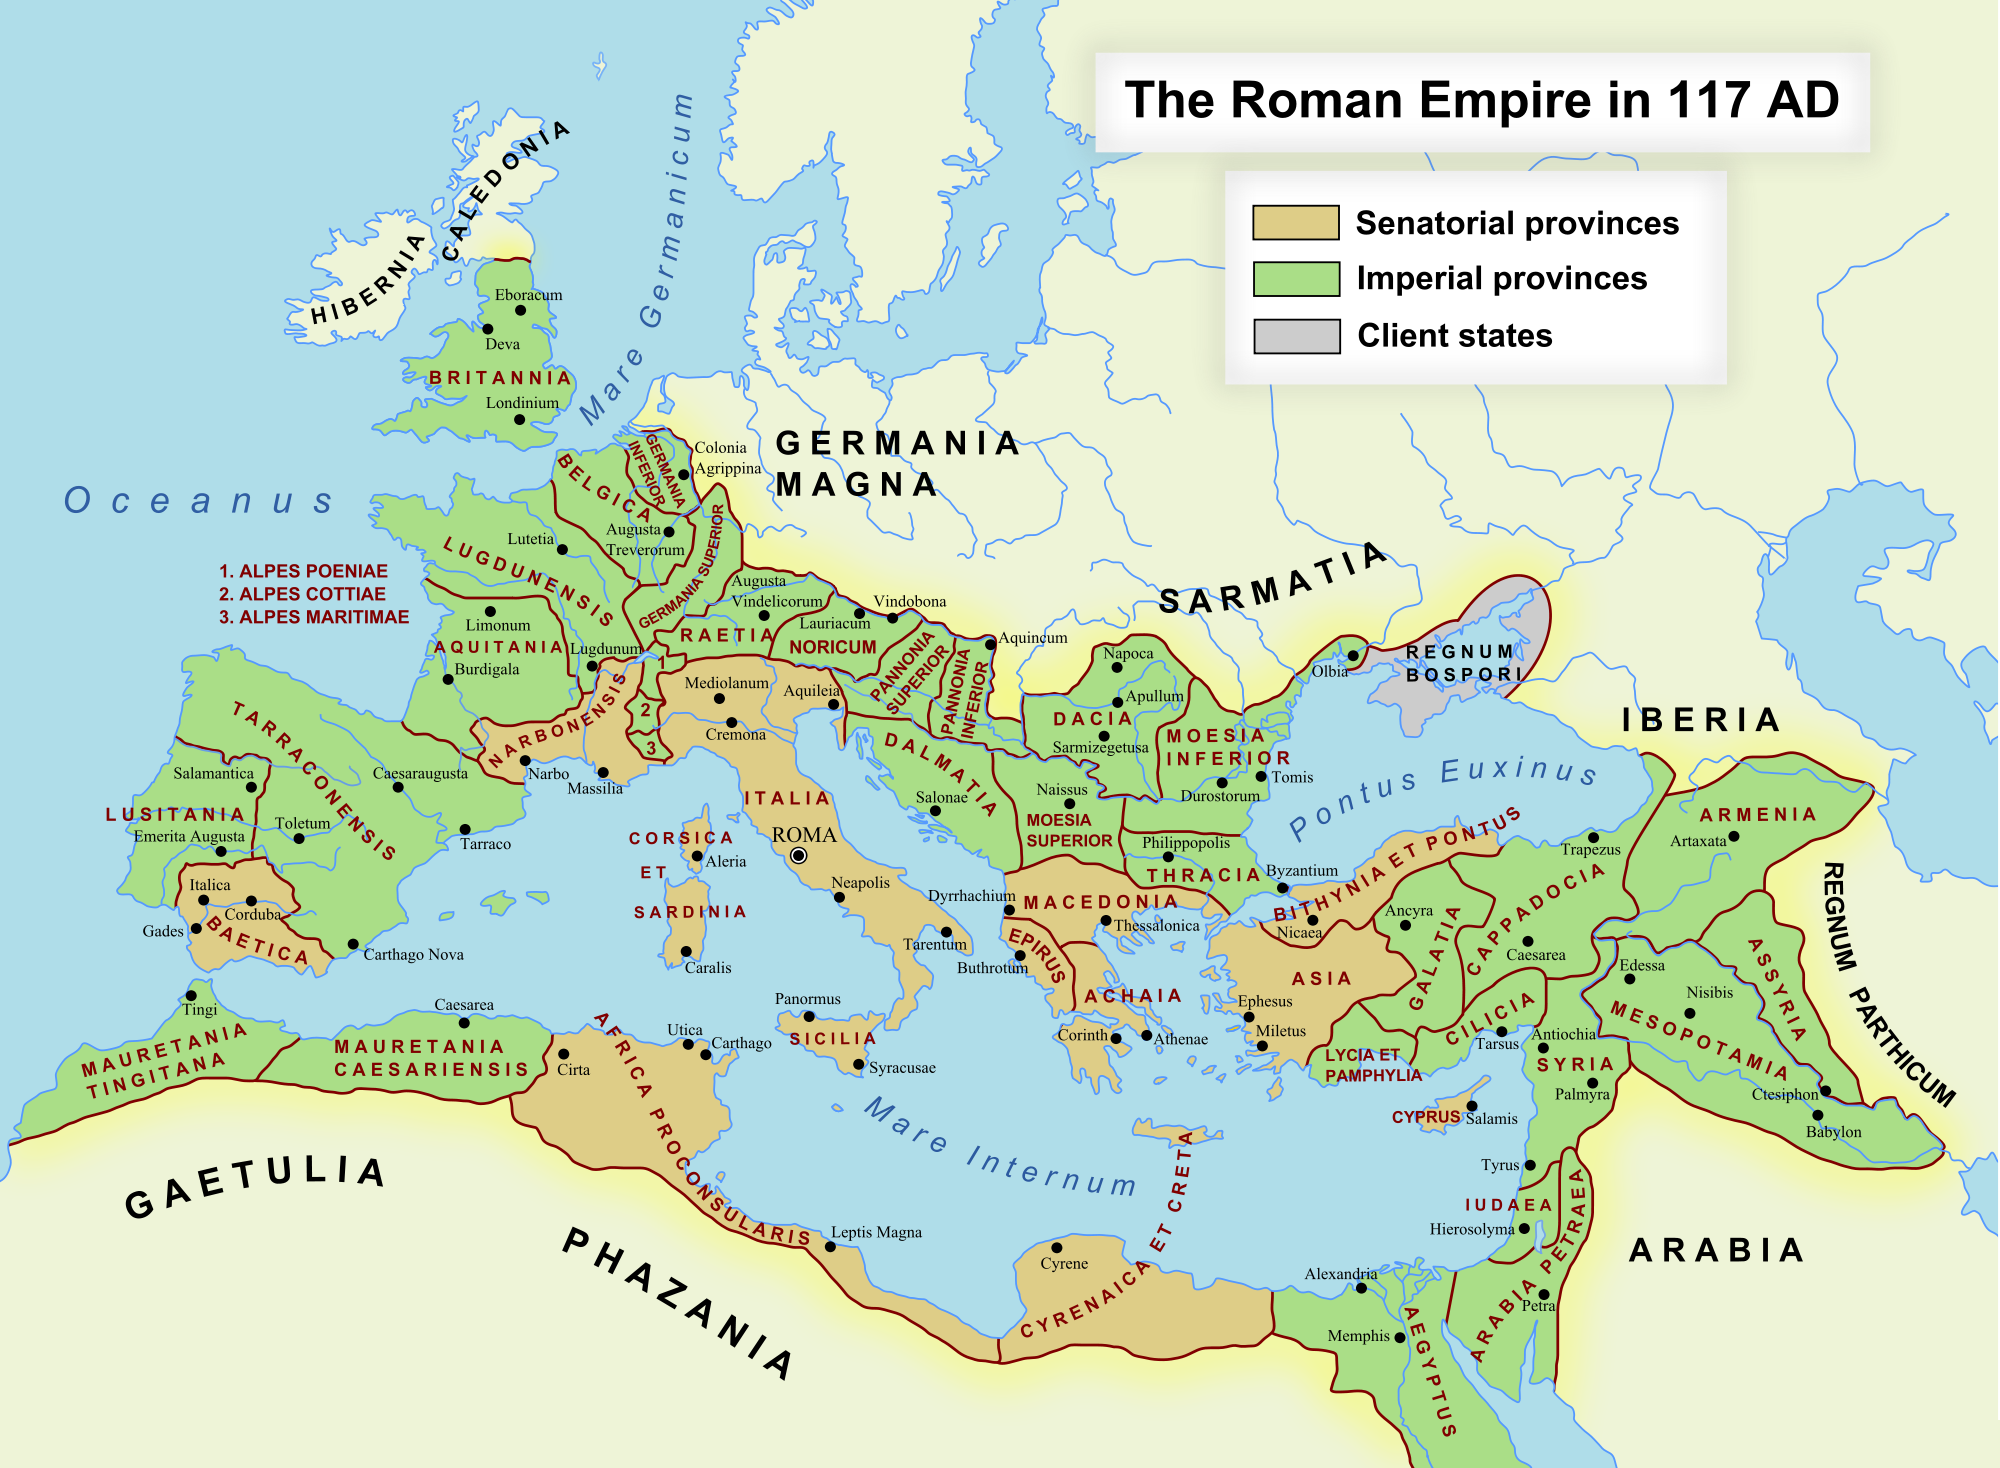 Mapping the languages of the roman empire peter kirby romanempire 117ad gumiabroncs Choice Image